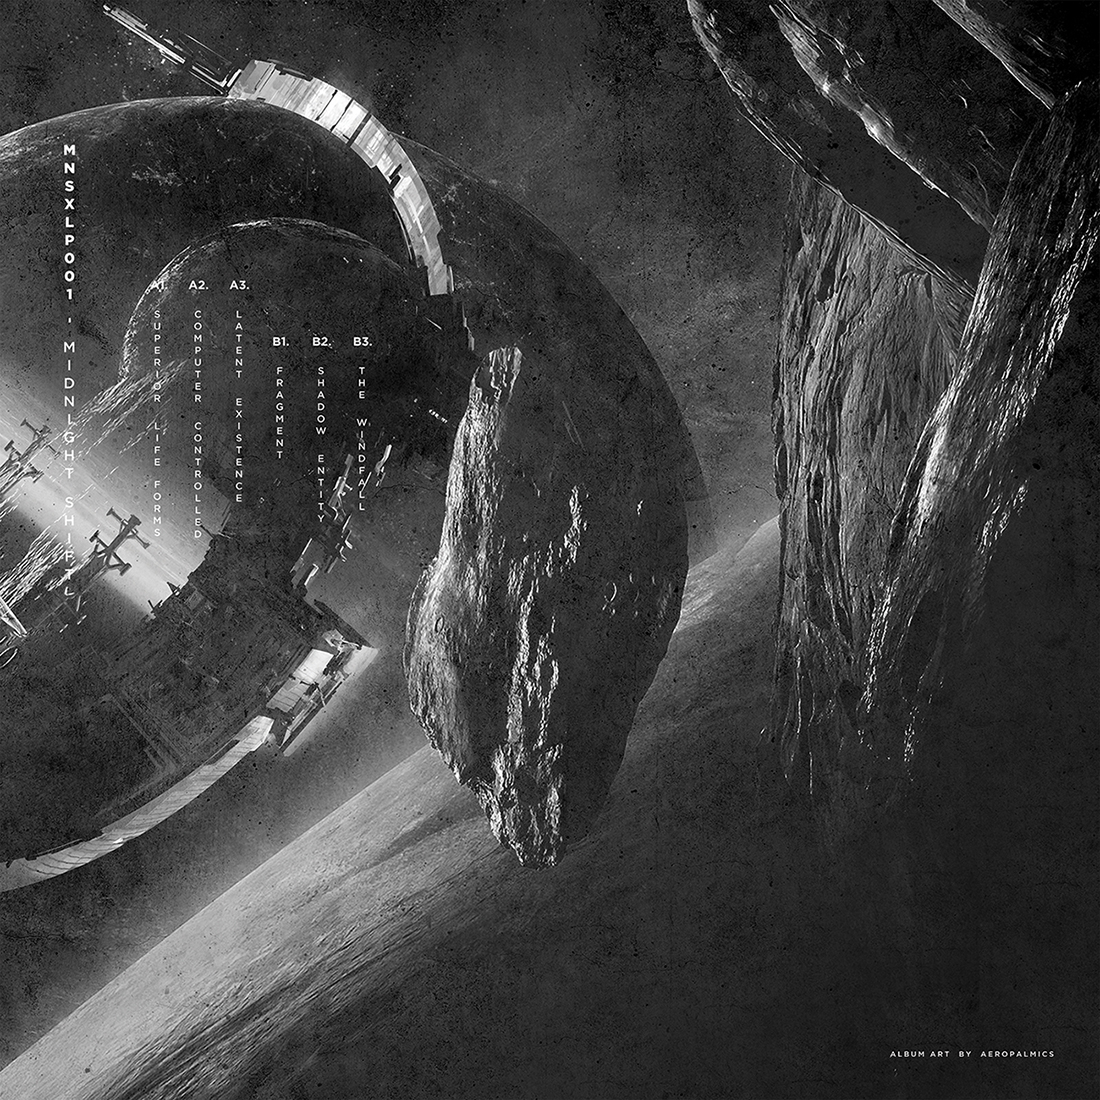 umwelt - superior life forms  art and layout created for singaporean techno-record label midnight shift and lyon-based musician umwelt's new lp titled 'Superior life forms'  Founder of Rave or Die and of the New Flesh Records imprint, Umwelt boasts over forty releases to date, which place him among the most prolific French electronic producers. In 2016, after a long spell off the radar, this expert in ferocious distortions tinted with sweet melancholy delivered his second album, entitled Days of Dissent and released on Boidae. The opus was highly acclaimed by the public and the press, which proclaimed it an electro referent.  Letting instinct guide him in his path, umwelt continues the work of early pioneers while progressively leading listeners into dark, melancholic mental atmospheres.  buy music:  https://umwelt.bandcamp.com/   facebook  /  instagram  /  soundcloud  /  bandcamp   Pencil, digital media August 2019